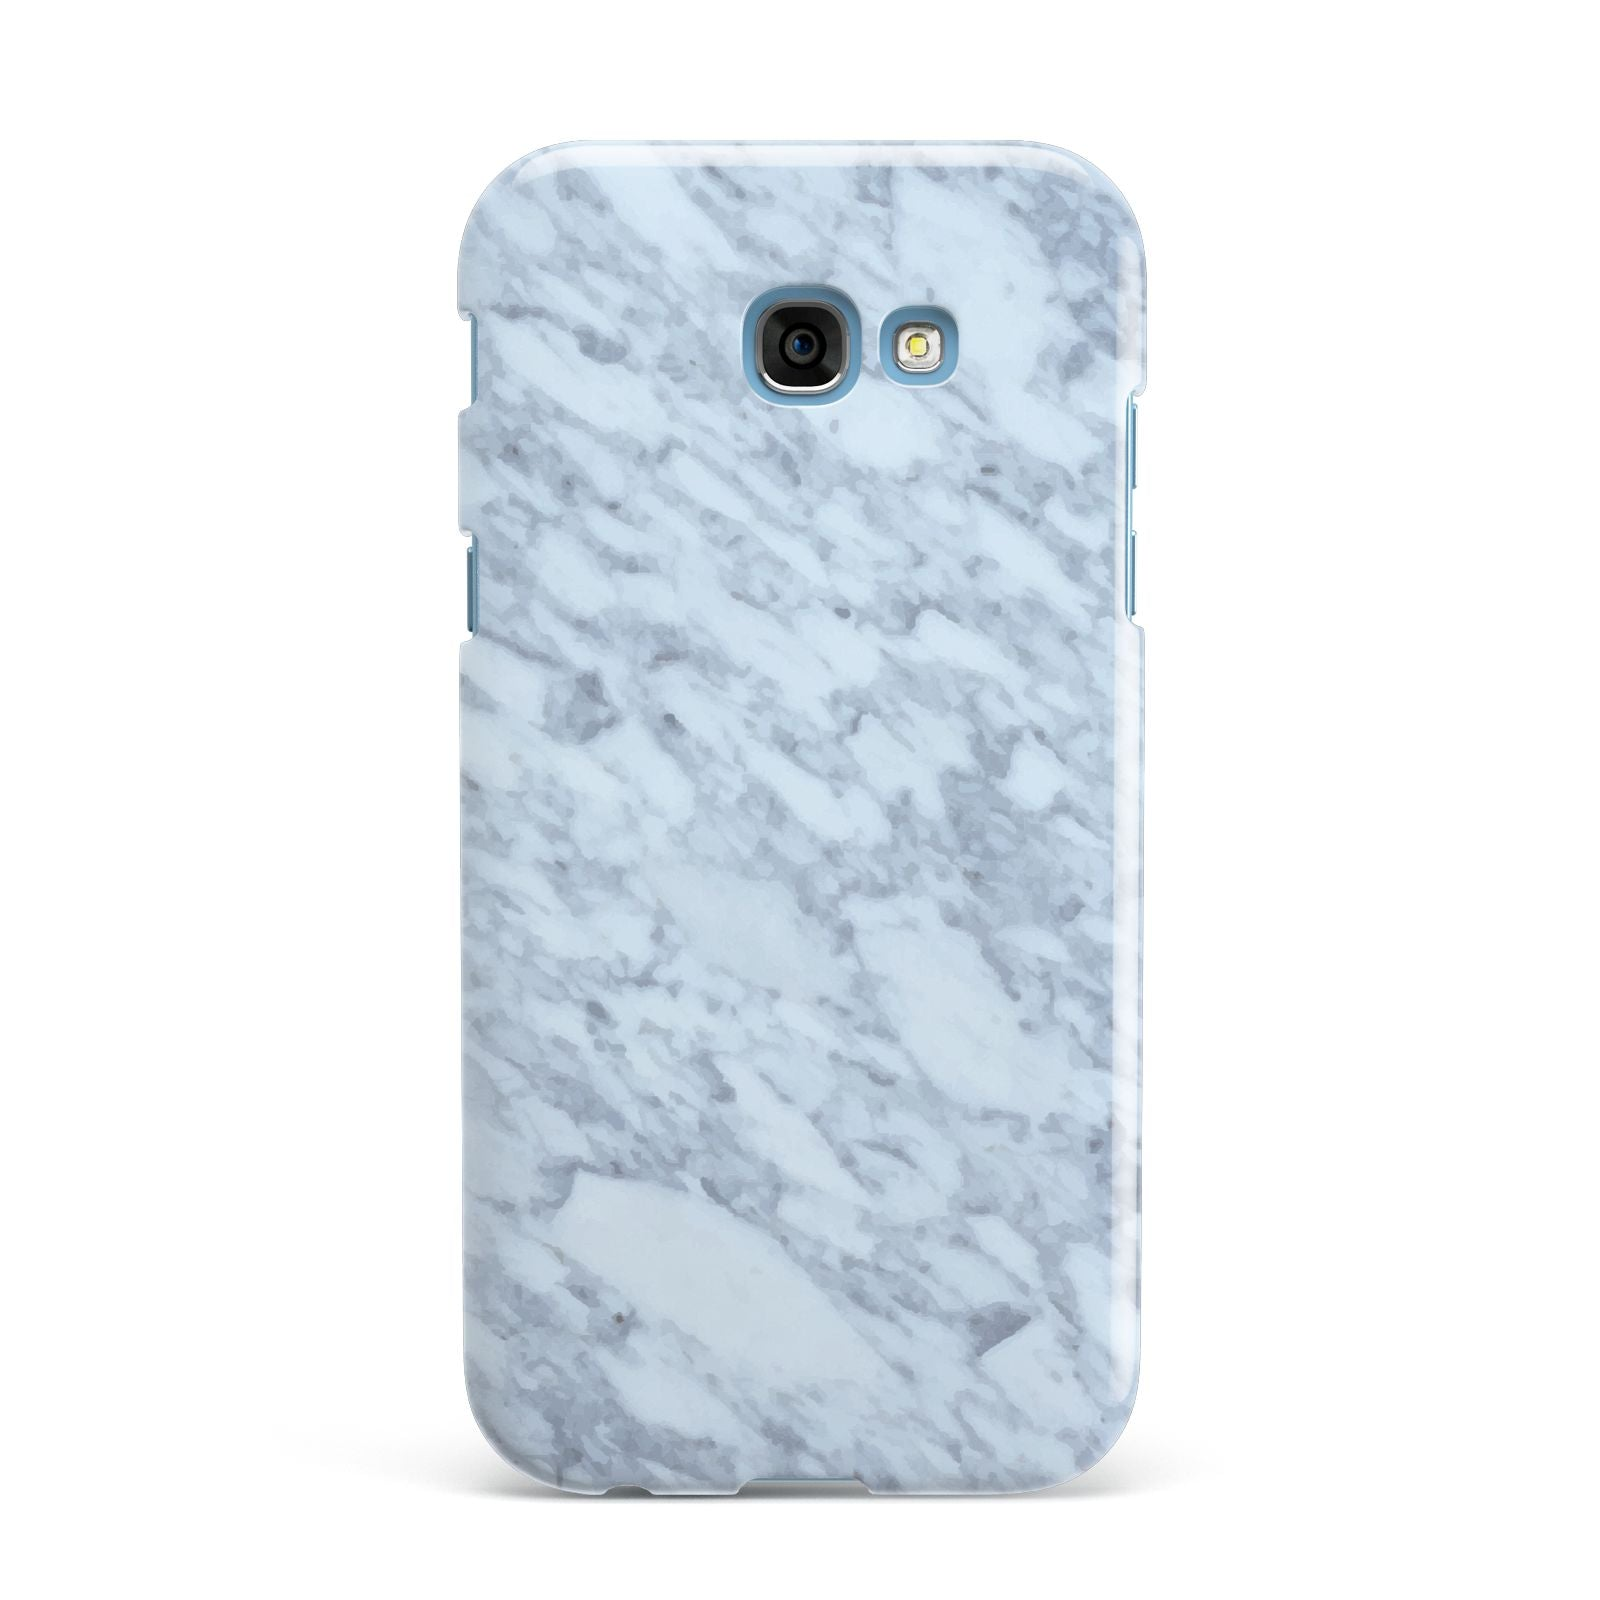 Faux Marble Grey 2 Samsung Galaxy A7 2017 Case